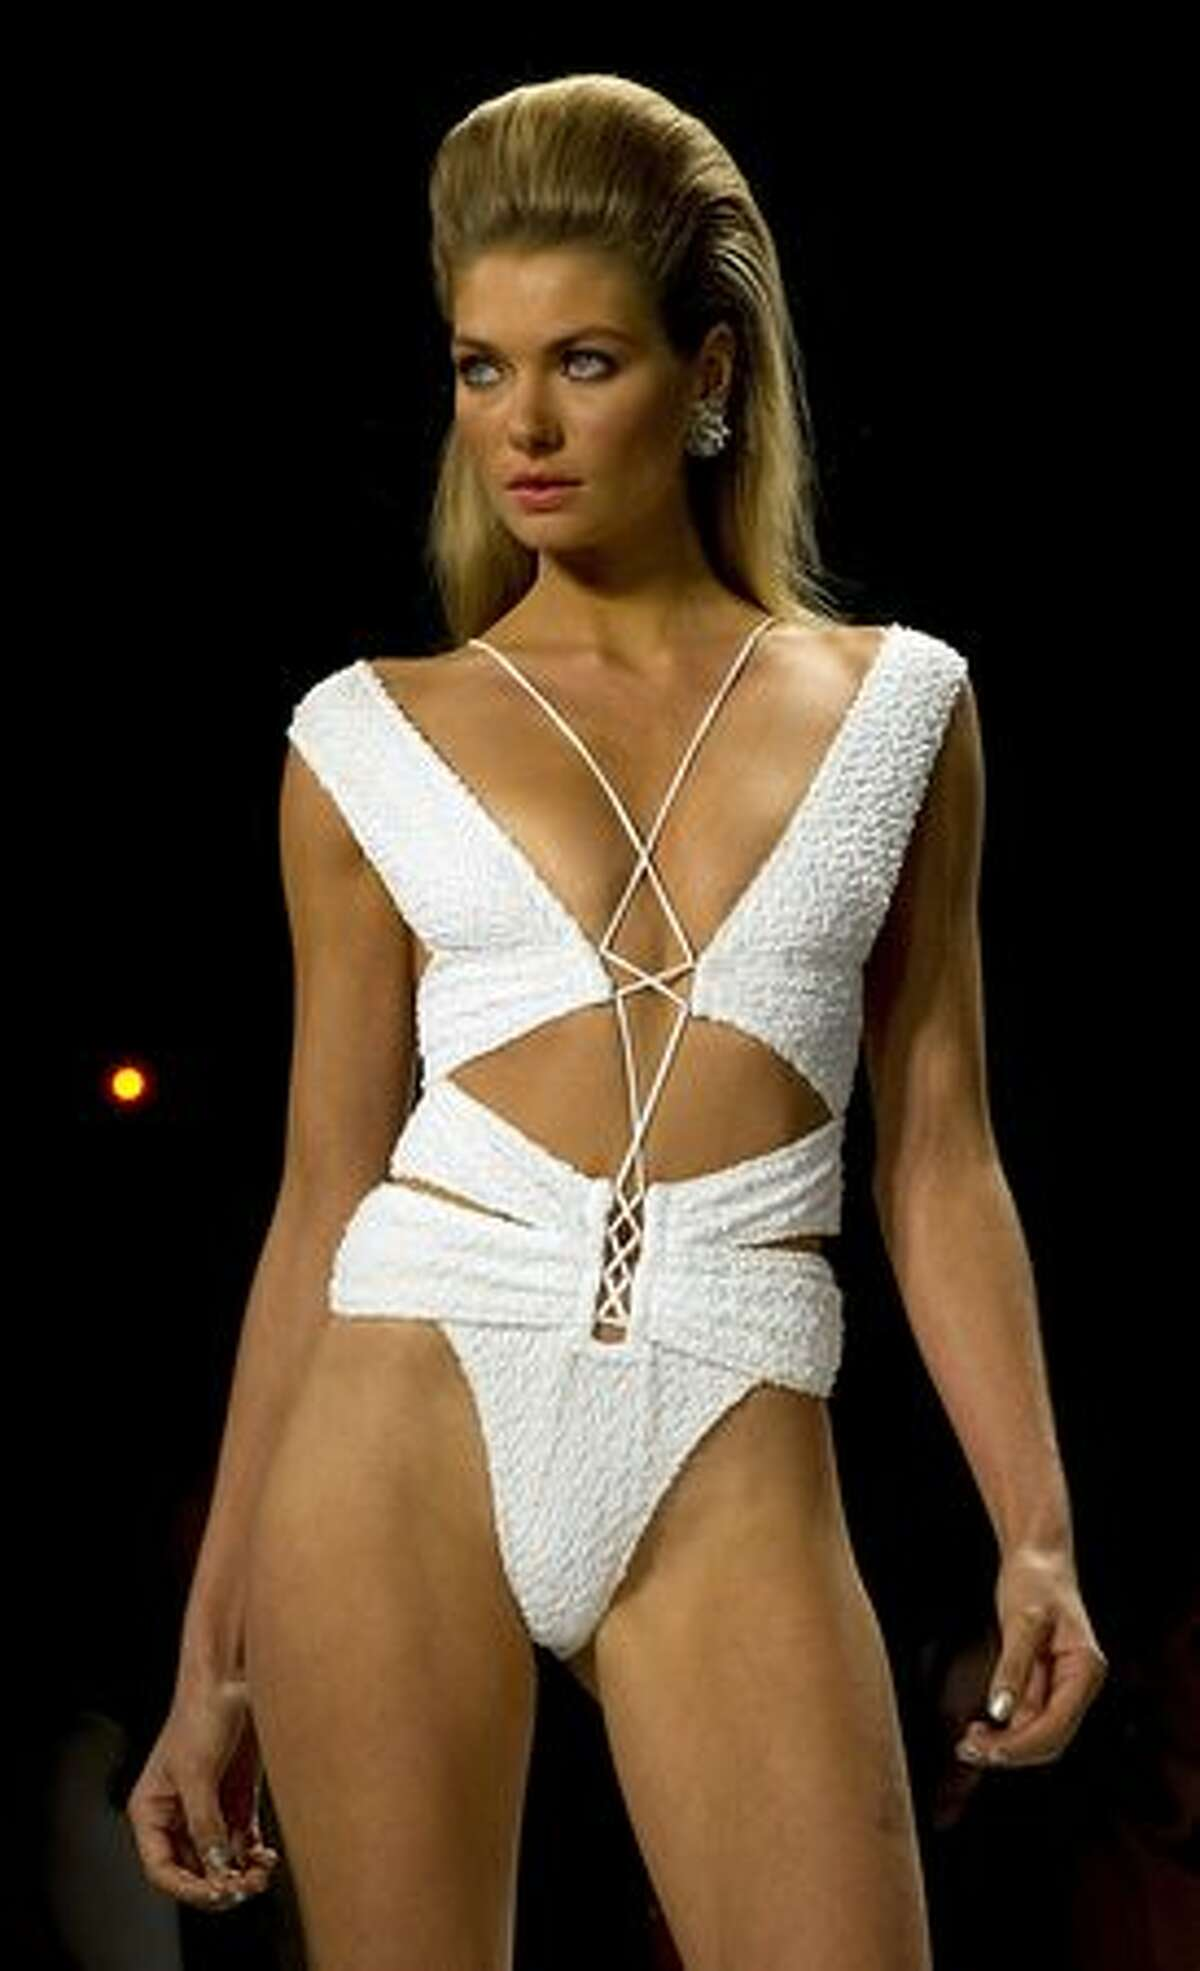 A model wears fashions from the Gottex collection at the Mercedes-Benz Fashion Week in New York City.